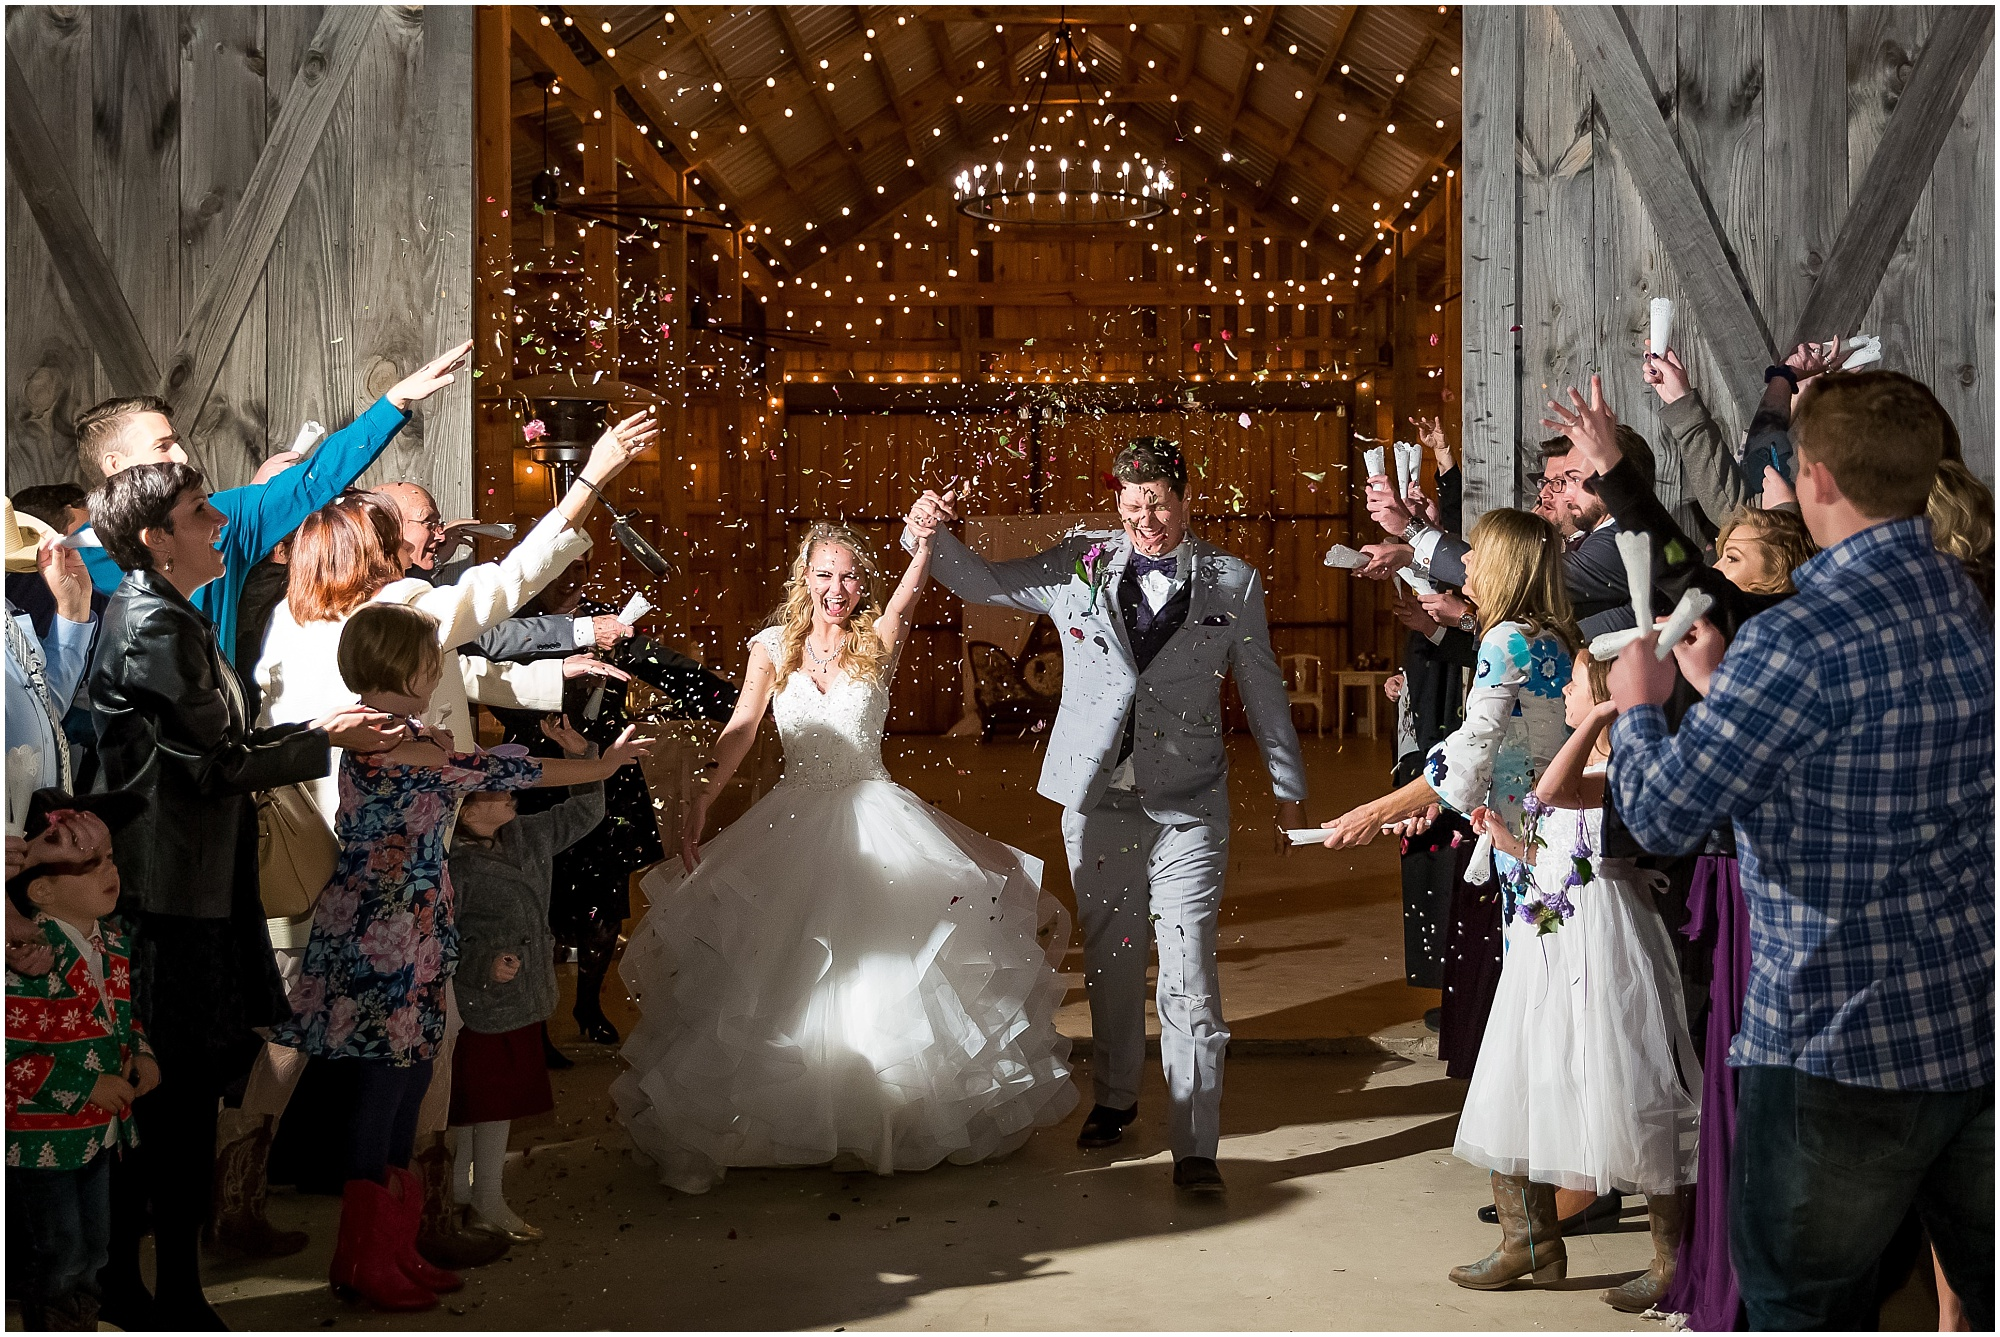 Bride and groom leave their reception with a wildflower toss - Disney-inspired wedding at The Barn at 5 S Ranch - Jason & Melaina Photography - www.jasonandmelaina.com